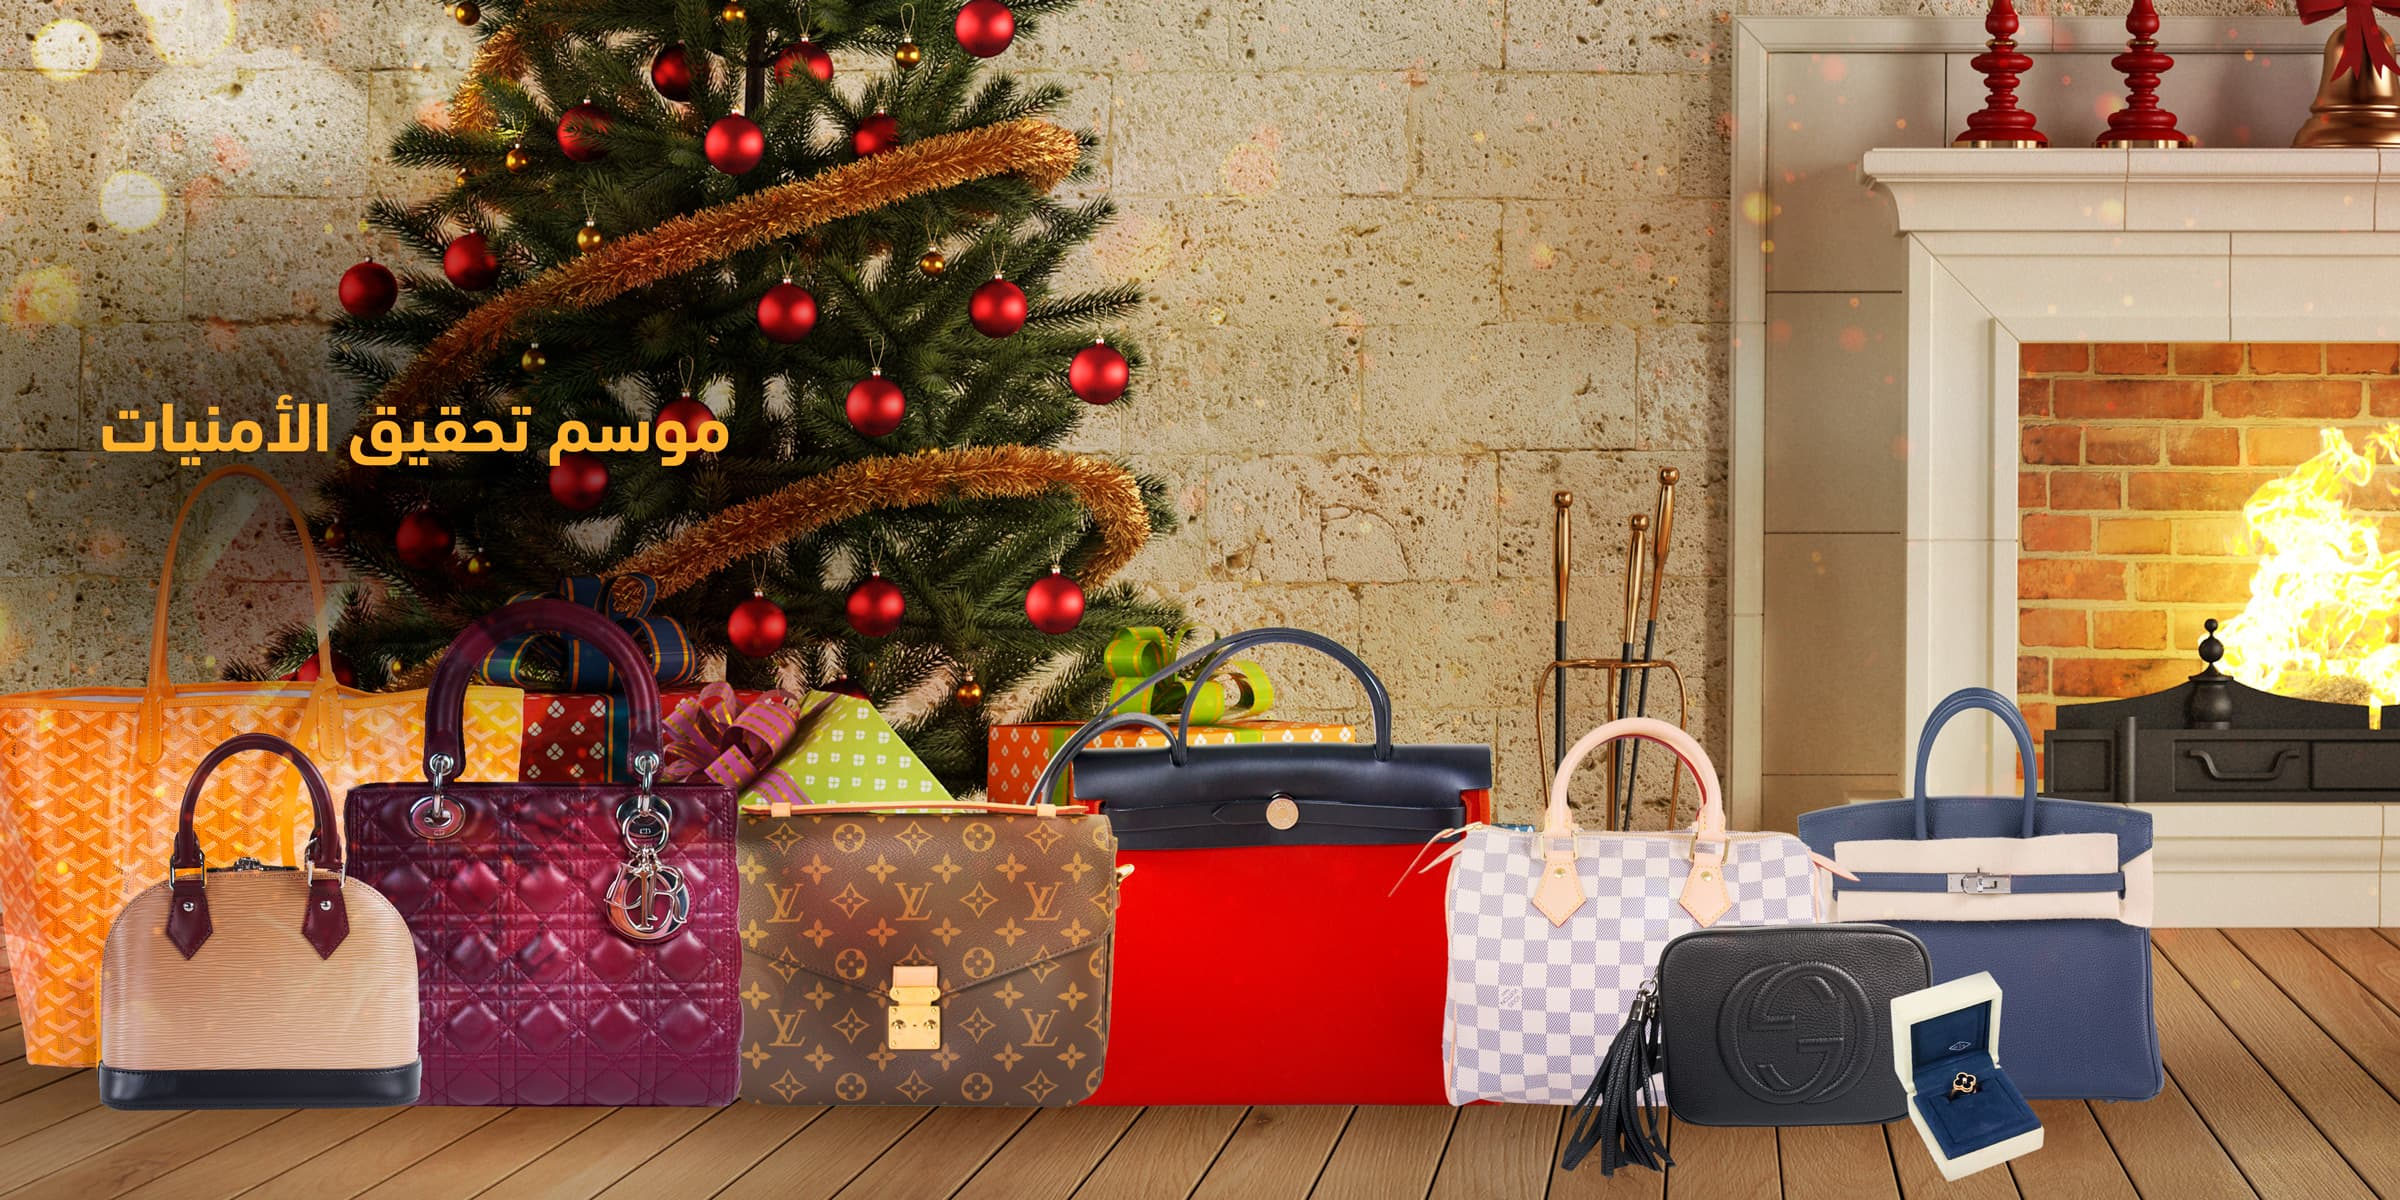 shop authentic new, used and pre-owned designer luxury handbags online in dubai UAE